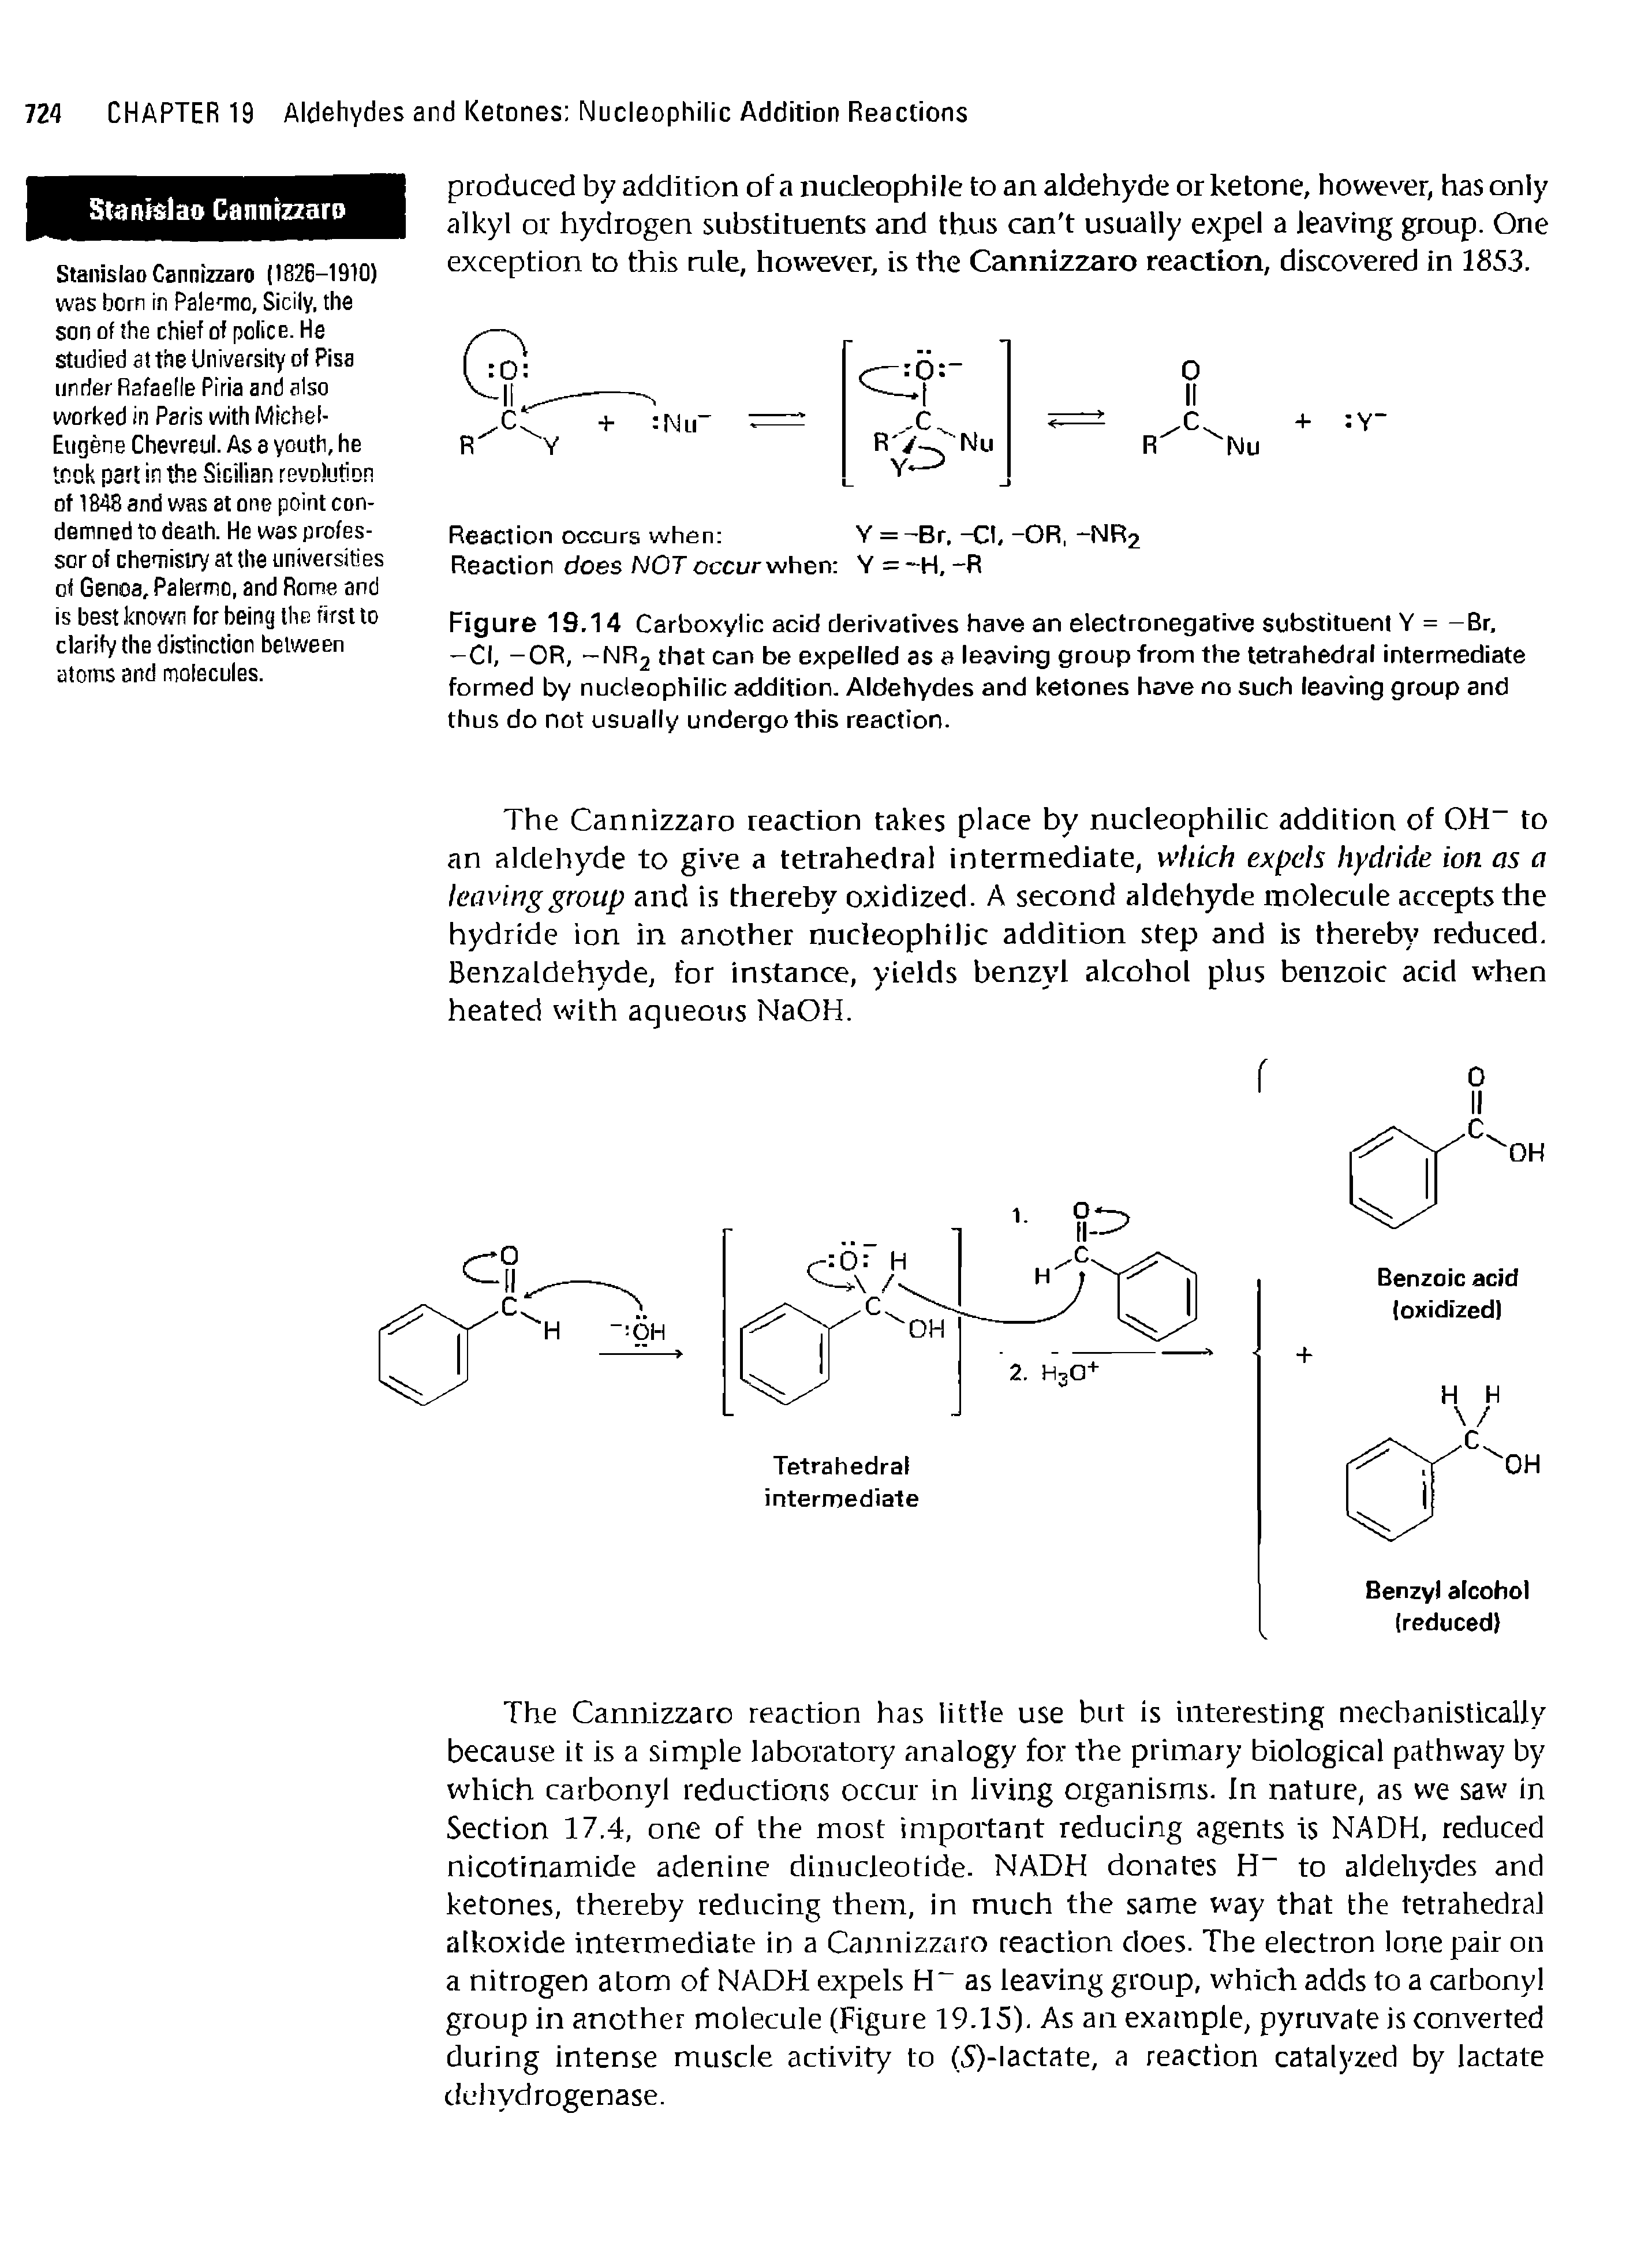 Figure 19.14 Carboxylic acid derivatives have an electronegative substituent Y = -Br, —Cl, -OR, -NR2 that can be expelled as a leaving group from the tetrahedral intermediate formed by nucleophilic addition. Aldehydes and ketones have no such leaving group and thus do not usually undergo this reaction.